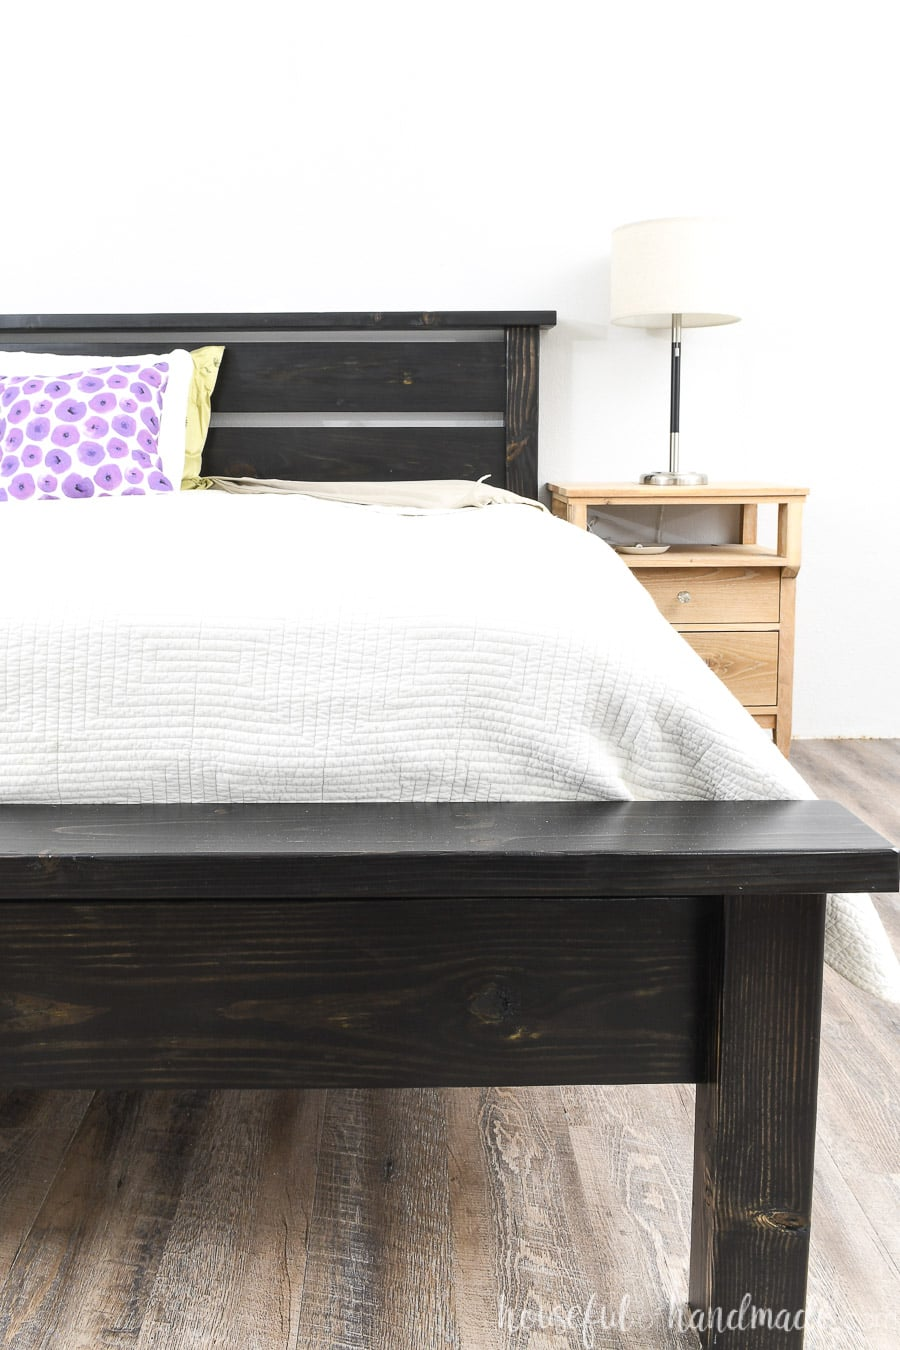 DIY platform bed frame that looks like a traditional bed sitting next to a nightstand.